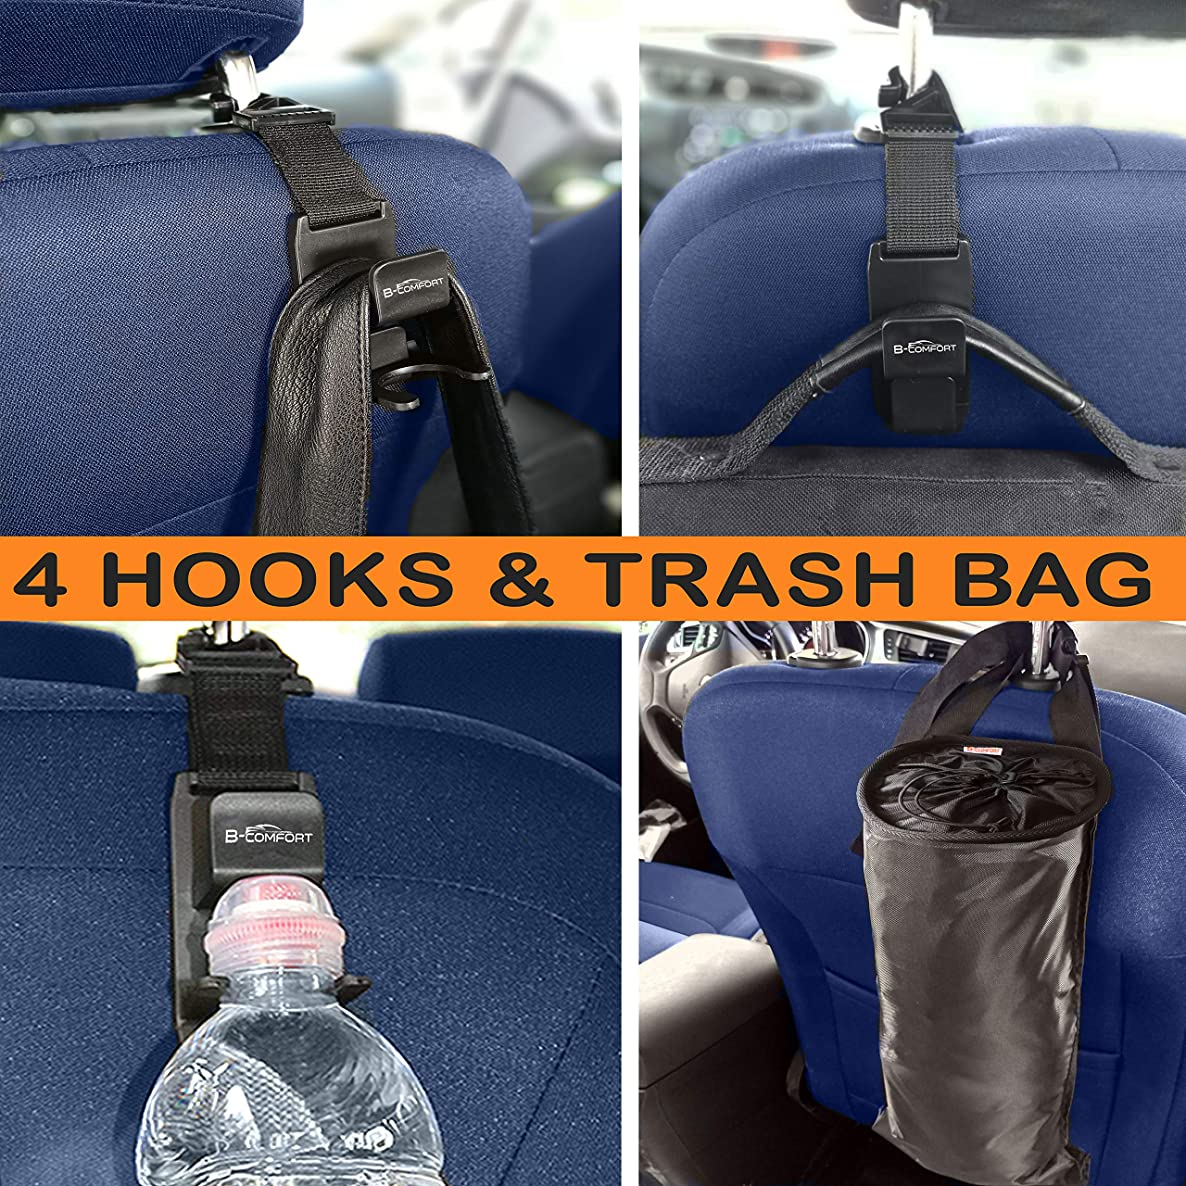 4 Magic Headrest Hooks for Car and Car Trash Bag-Universal Auto Vehicle Hanger Holder Back Front Seat Storage Organizer for Hanging Purse,Handbag,Backpack,Grocery Bags,Women Accessories